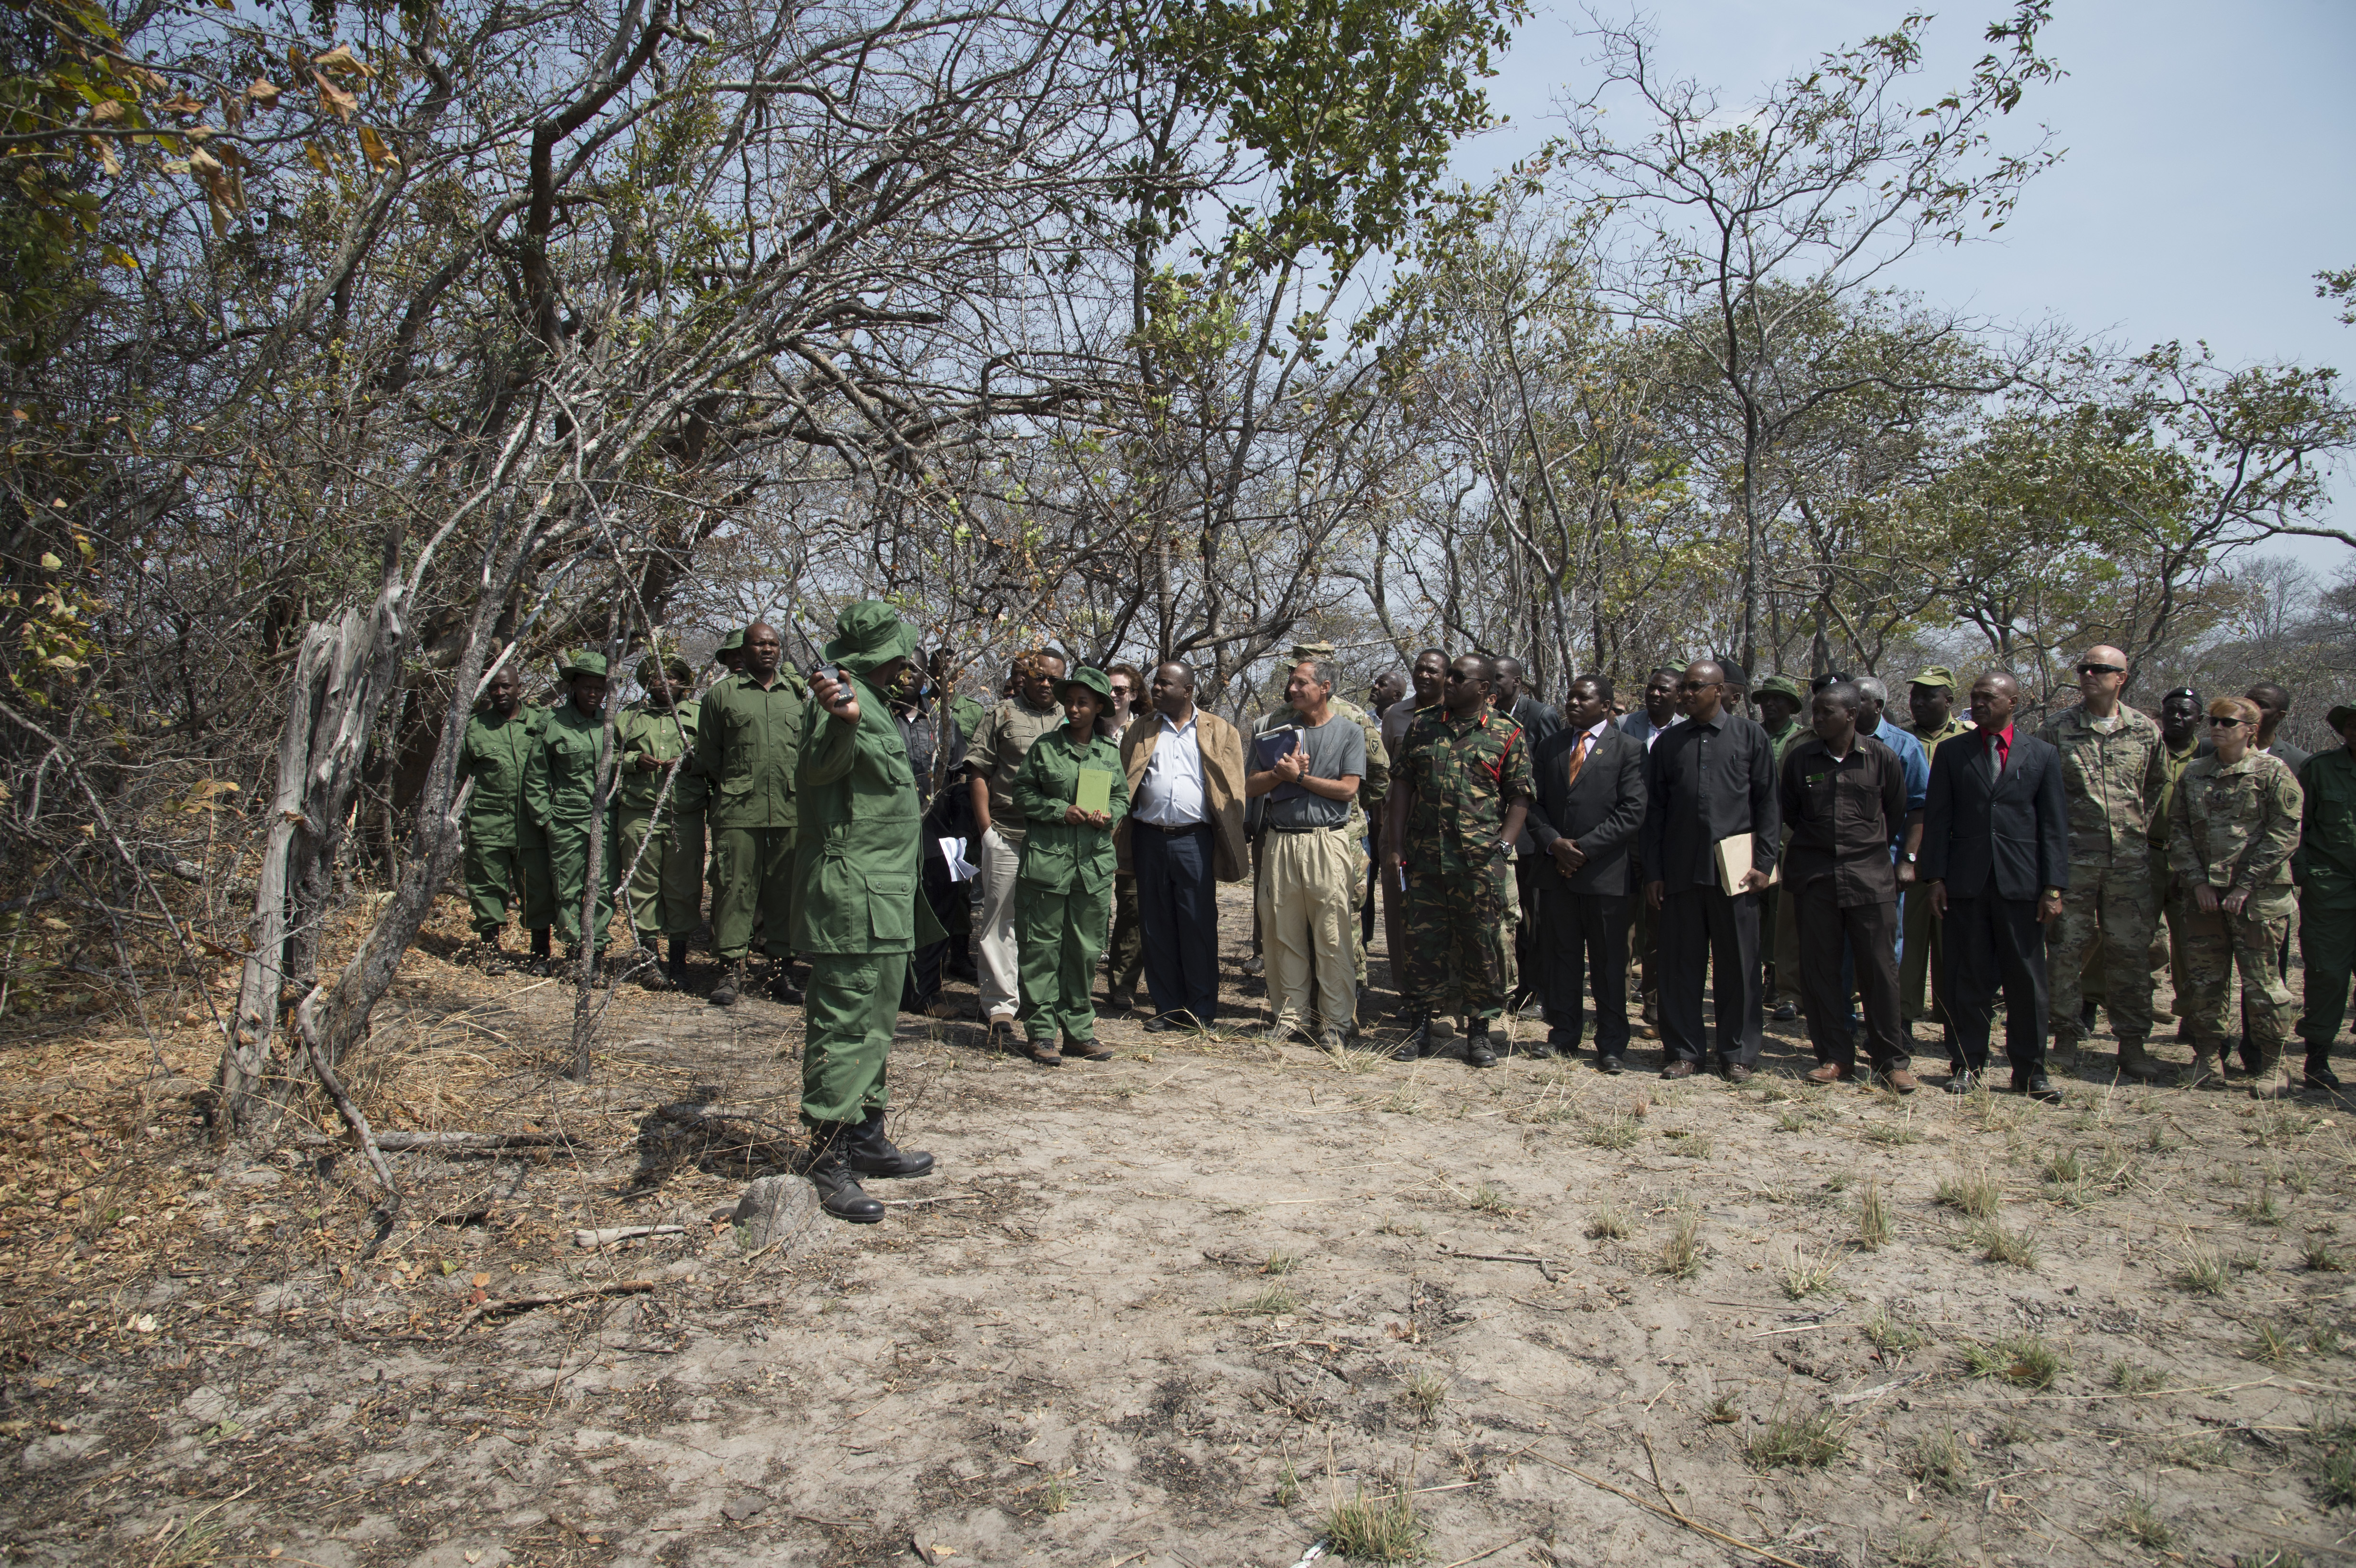 Spectators from the Ministry of Natural Resources and Tourism, Combined Joint Task Force - Horn of Africa, U.S. Embassy Tanzania and North Carolina Army National Guard listen to a briefing before witnessing the raid of a simulated poacher camp August 24, 2016, at the Rungwa Game Reserve, Tanzania. Tanzania rangers recently trained with members of the 403rd Civil Affairs Battalion, a component of Combined Joint Task Force - Horn of Africa, and North Carolina Army National Guard to learn techniques to track and capture poachers. The training is part of the Tanzanian government and U.S. Embassy's plan to reduce wildlife poaching in the country. (U.S. Air Force photo by Staff Sgt. Eric Summers Jr.)